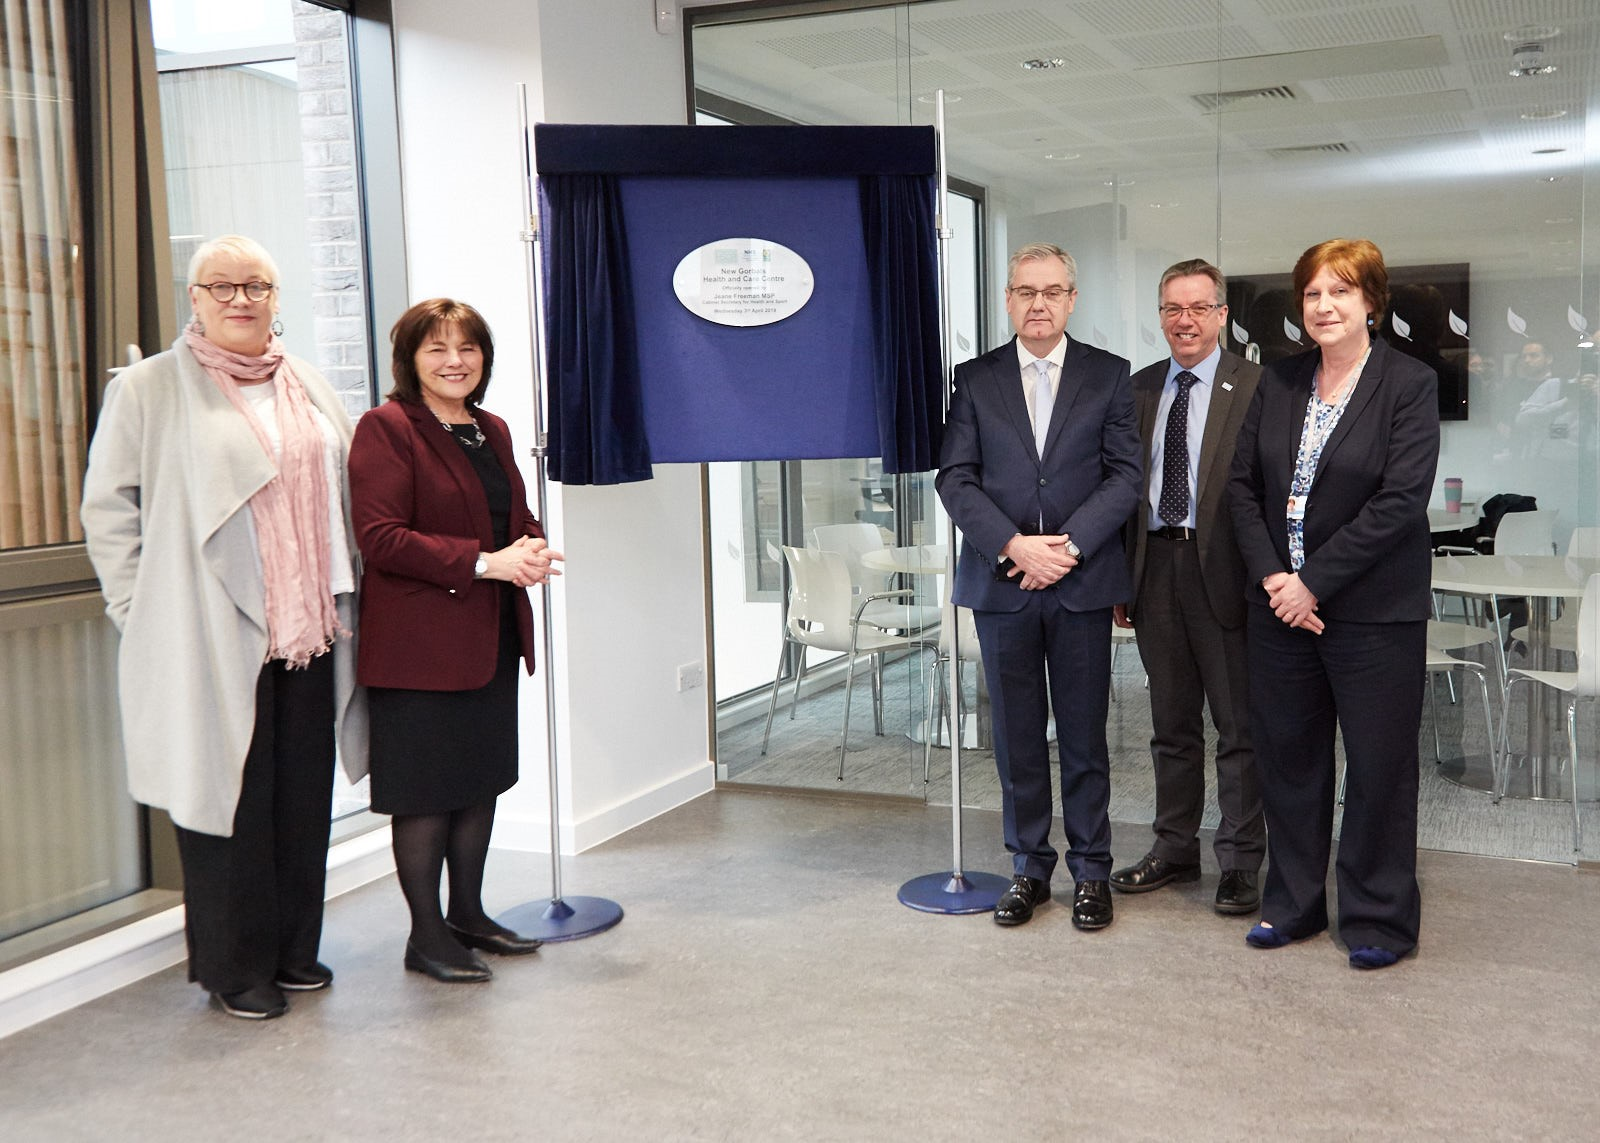 £17 Million New Gorbals Health & Care Centre officially opened by Cabinet Secretary for Health